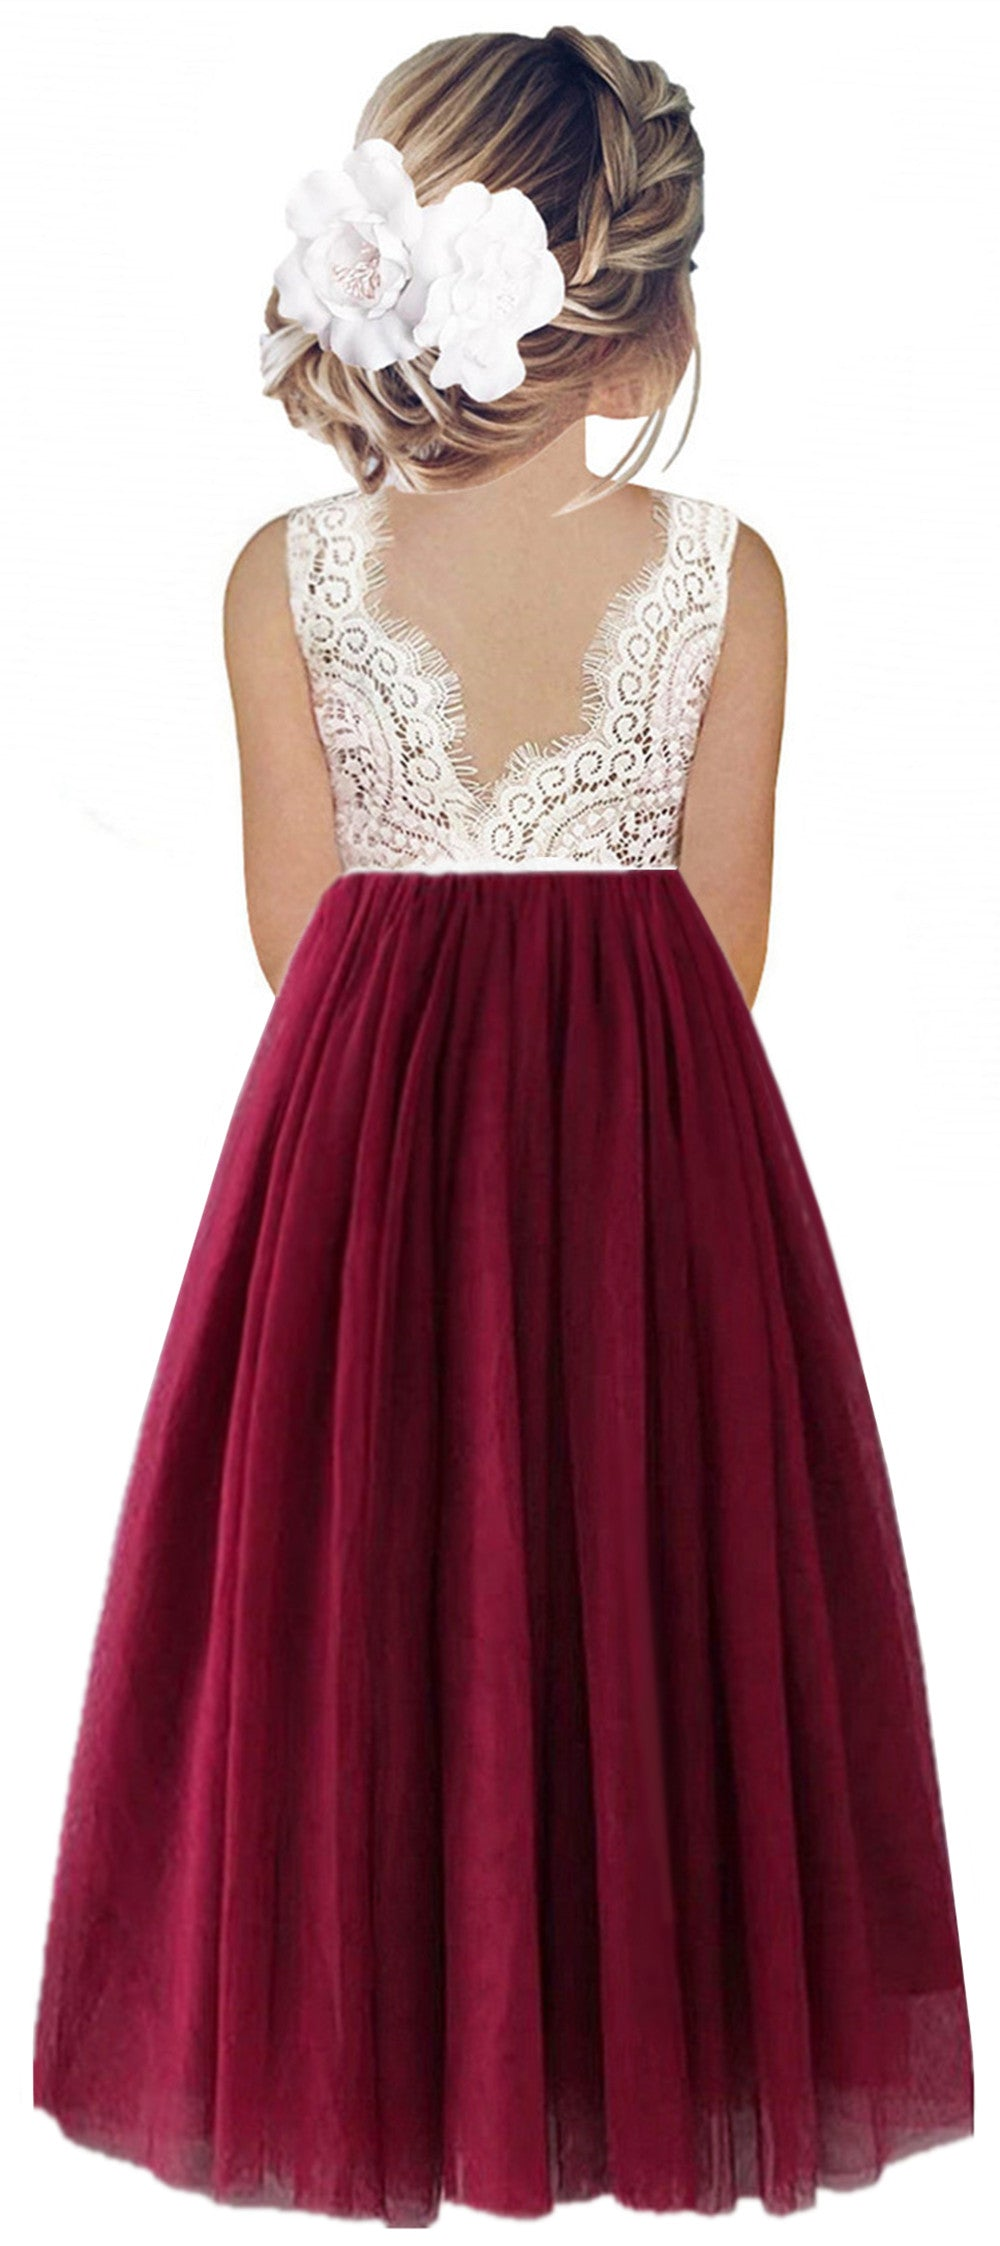 2BUNNIES Girl Peony Lace Back Sleeveless Maxi Straight Dress (Plum)